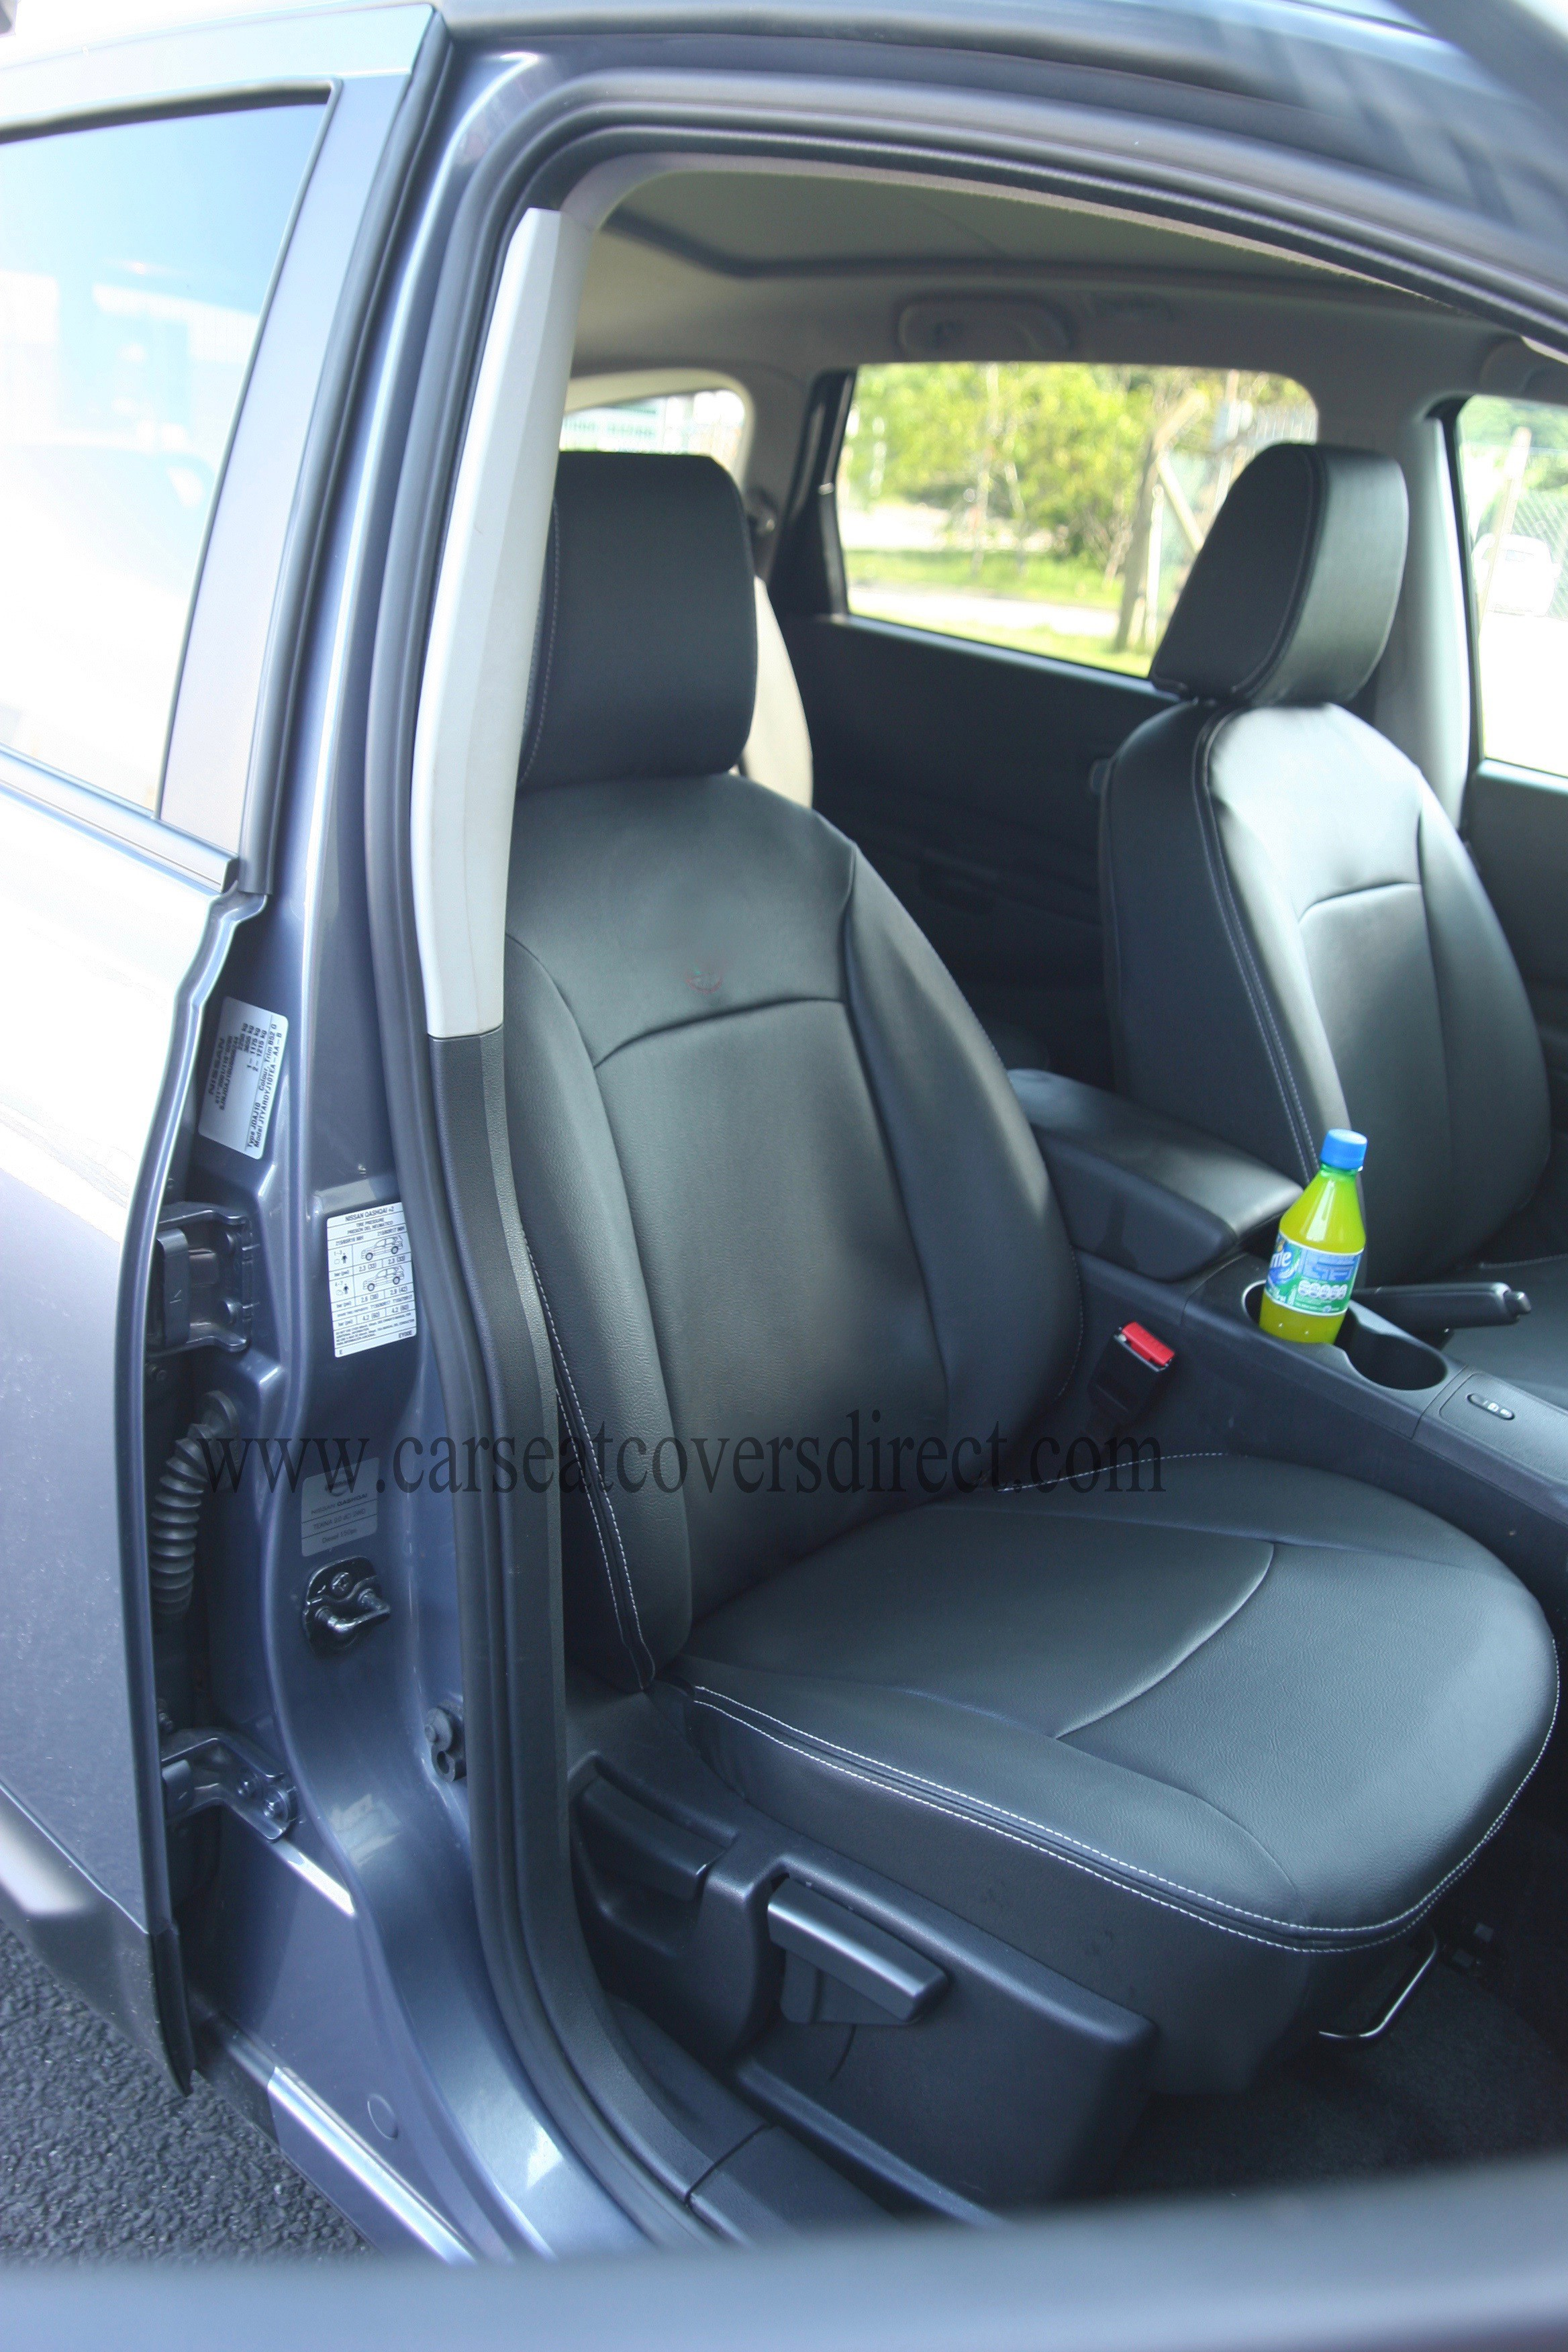 NISSAN QASHQAI 7 Seater Seat Covers